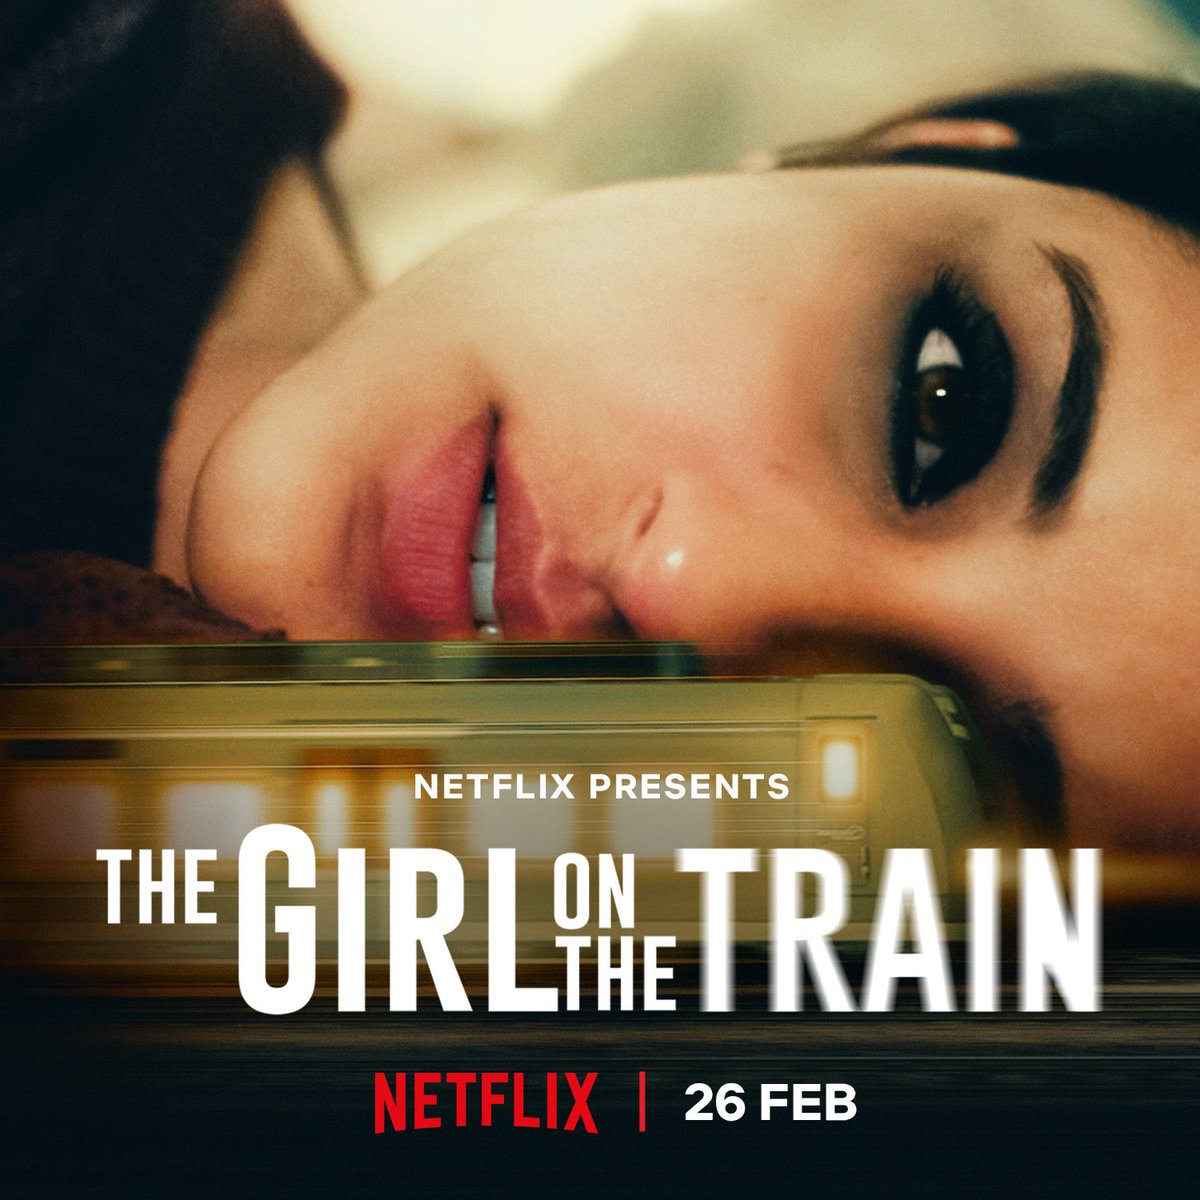 The Girl on the Train...One of my most favourite books. @ParineetiChopra ...One of my most favourite actresses!!! Waiting for Feb 26 @Shibasishsarkar!!!